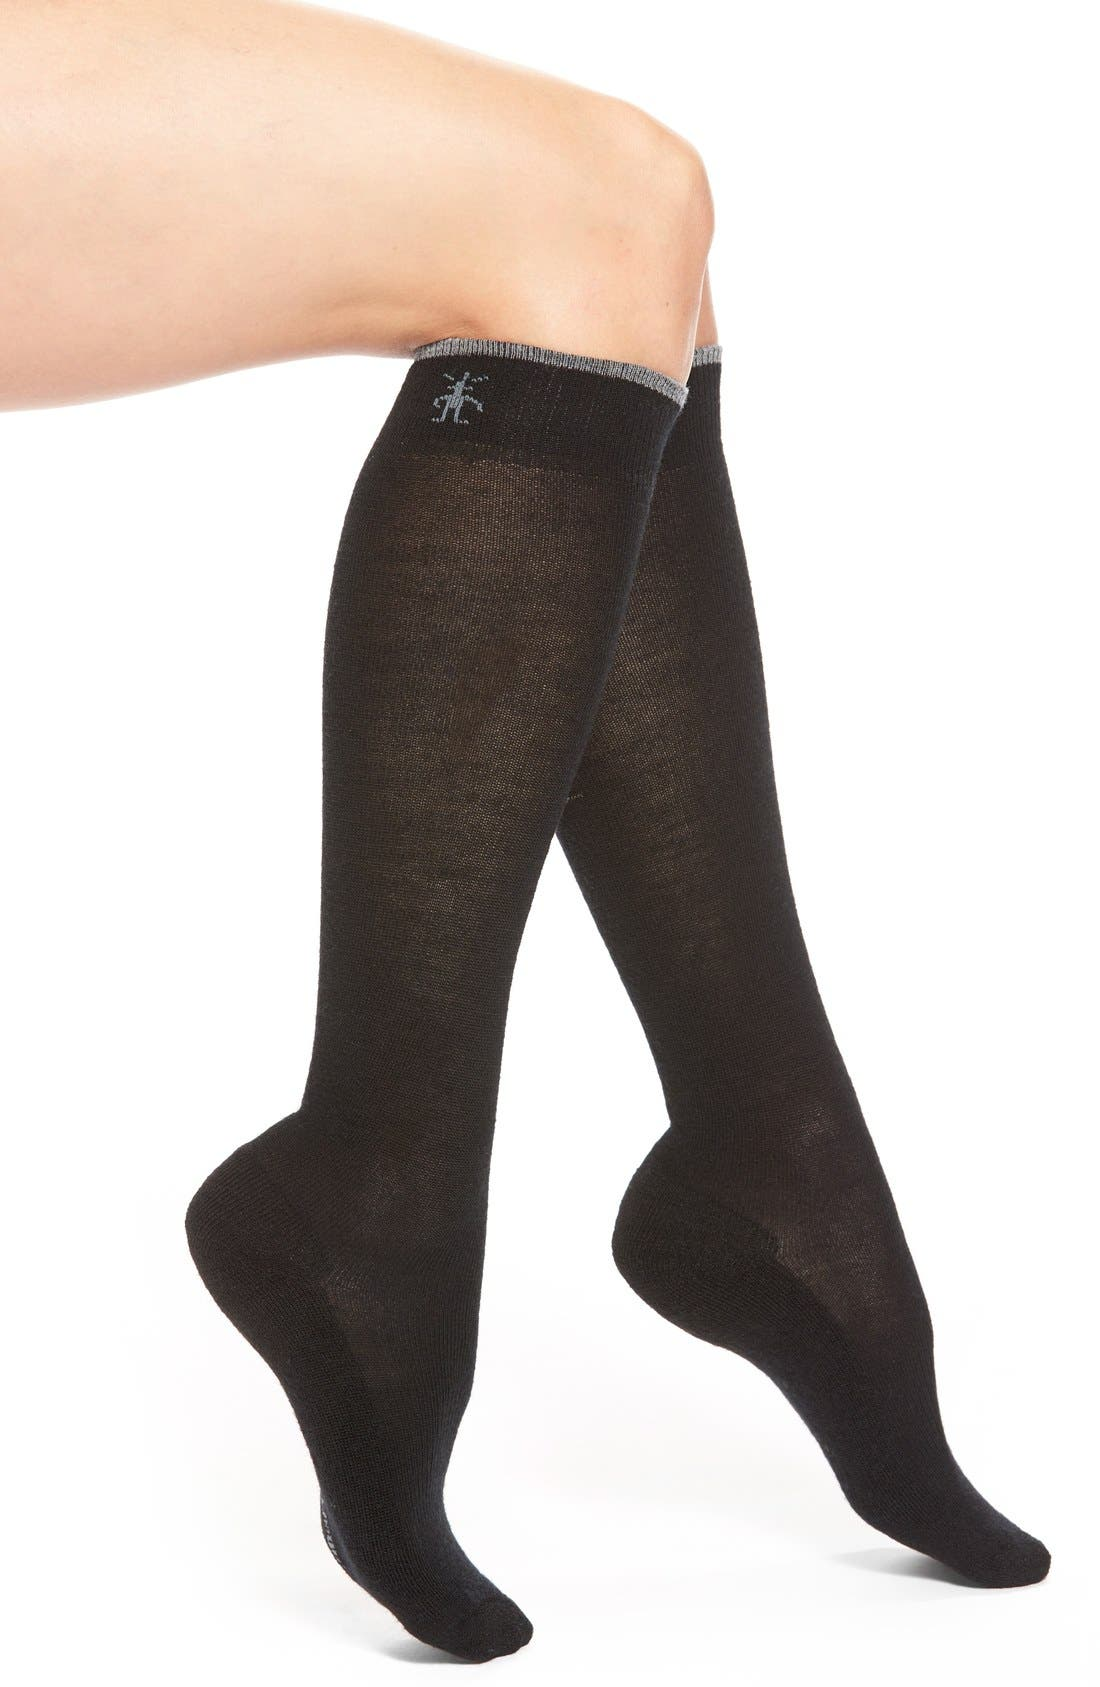 Merino Wool Blend Knee High Socks,                             Main thumbnail 1, color,                             001